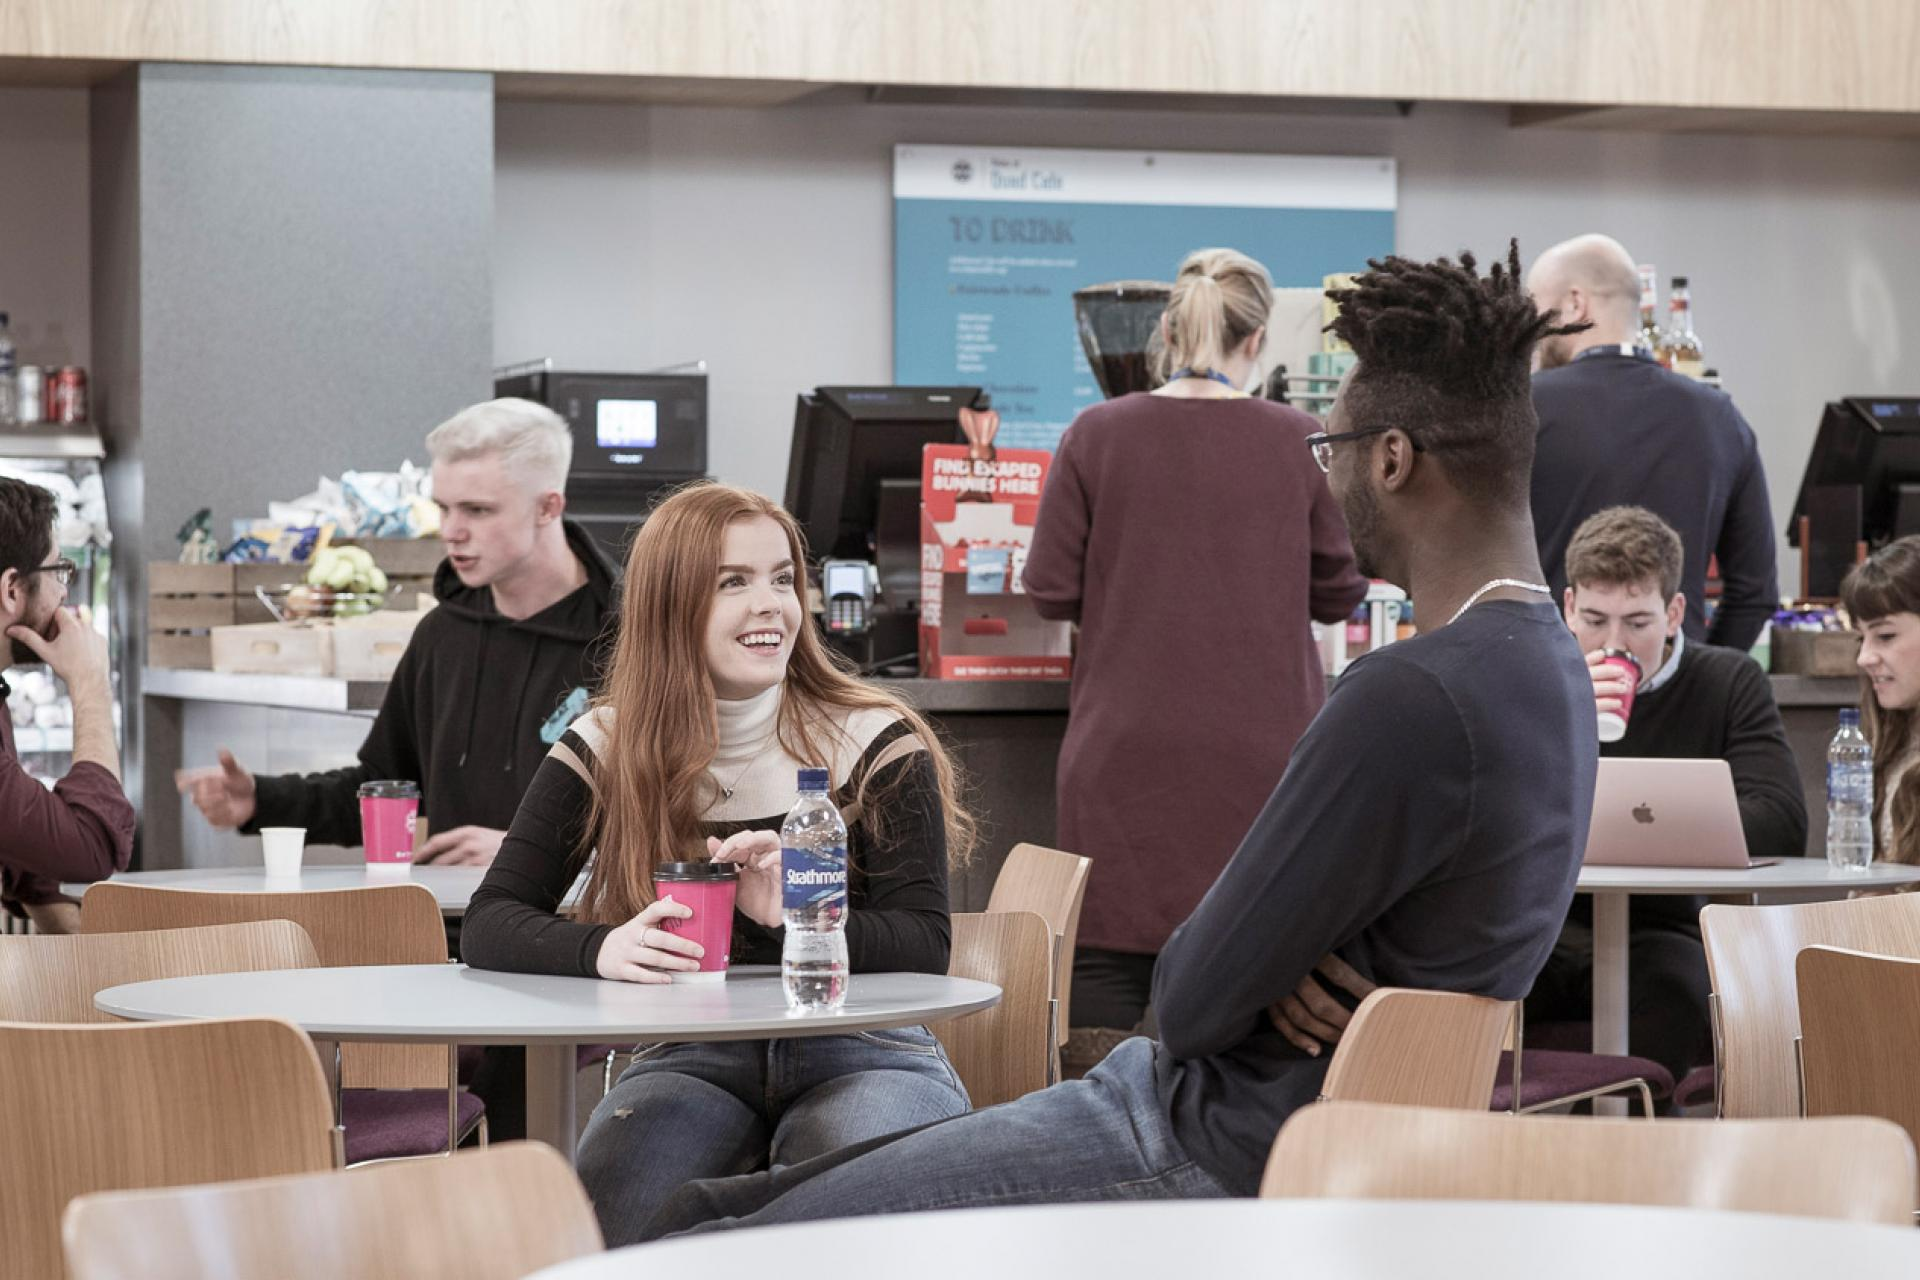 Students in the Edinburgh Law School cafe